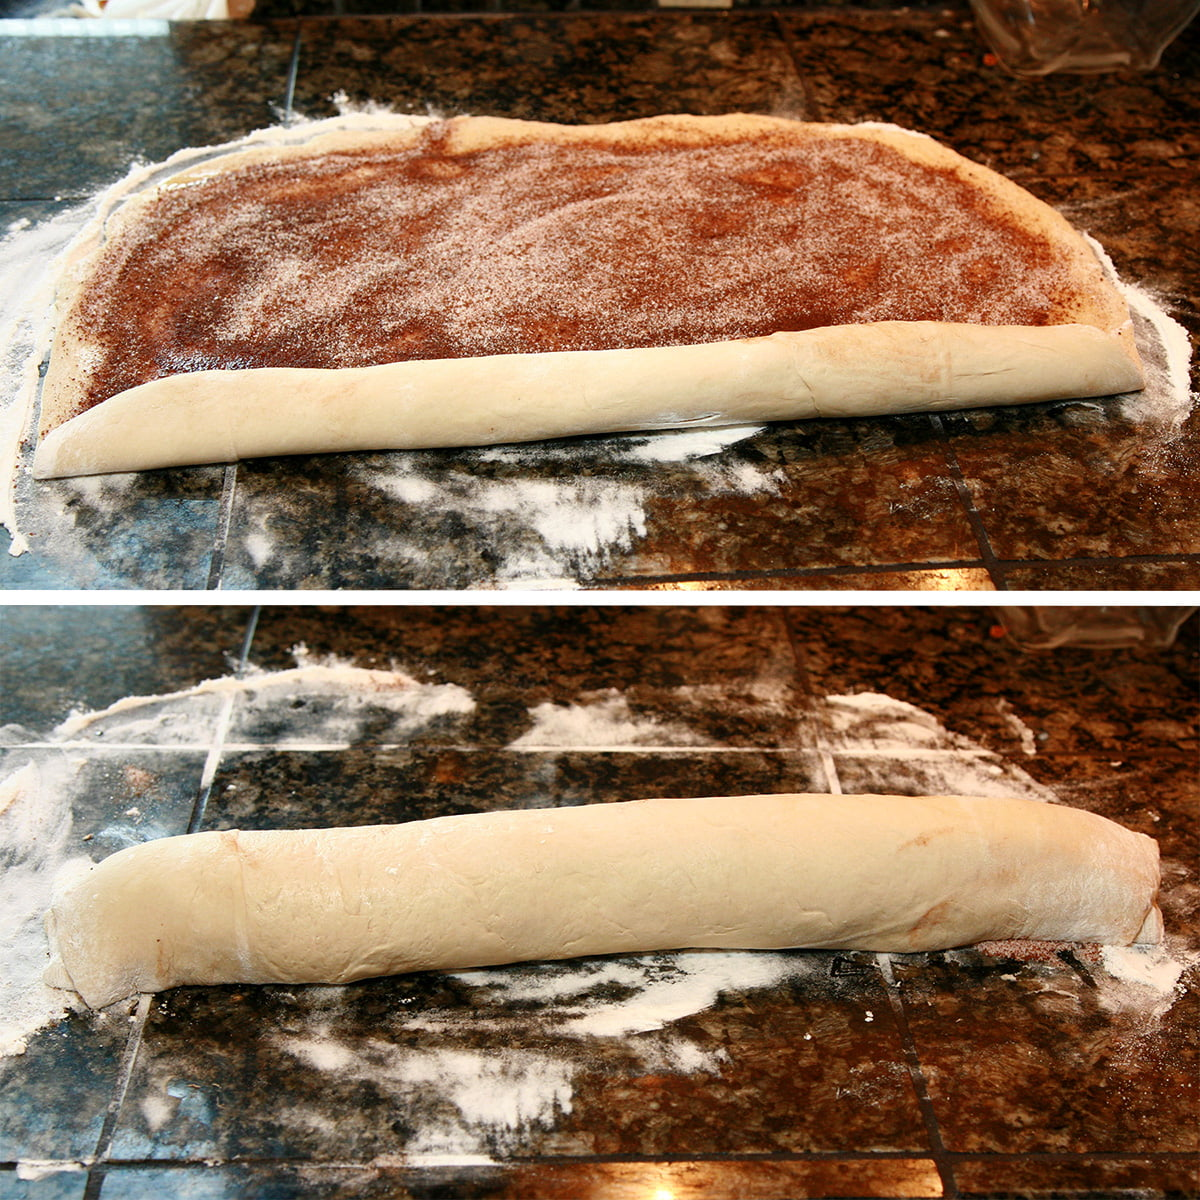 A two part compilation image showing the dough being rolled up.